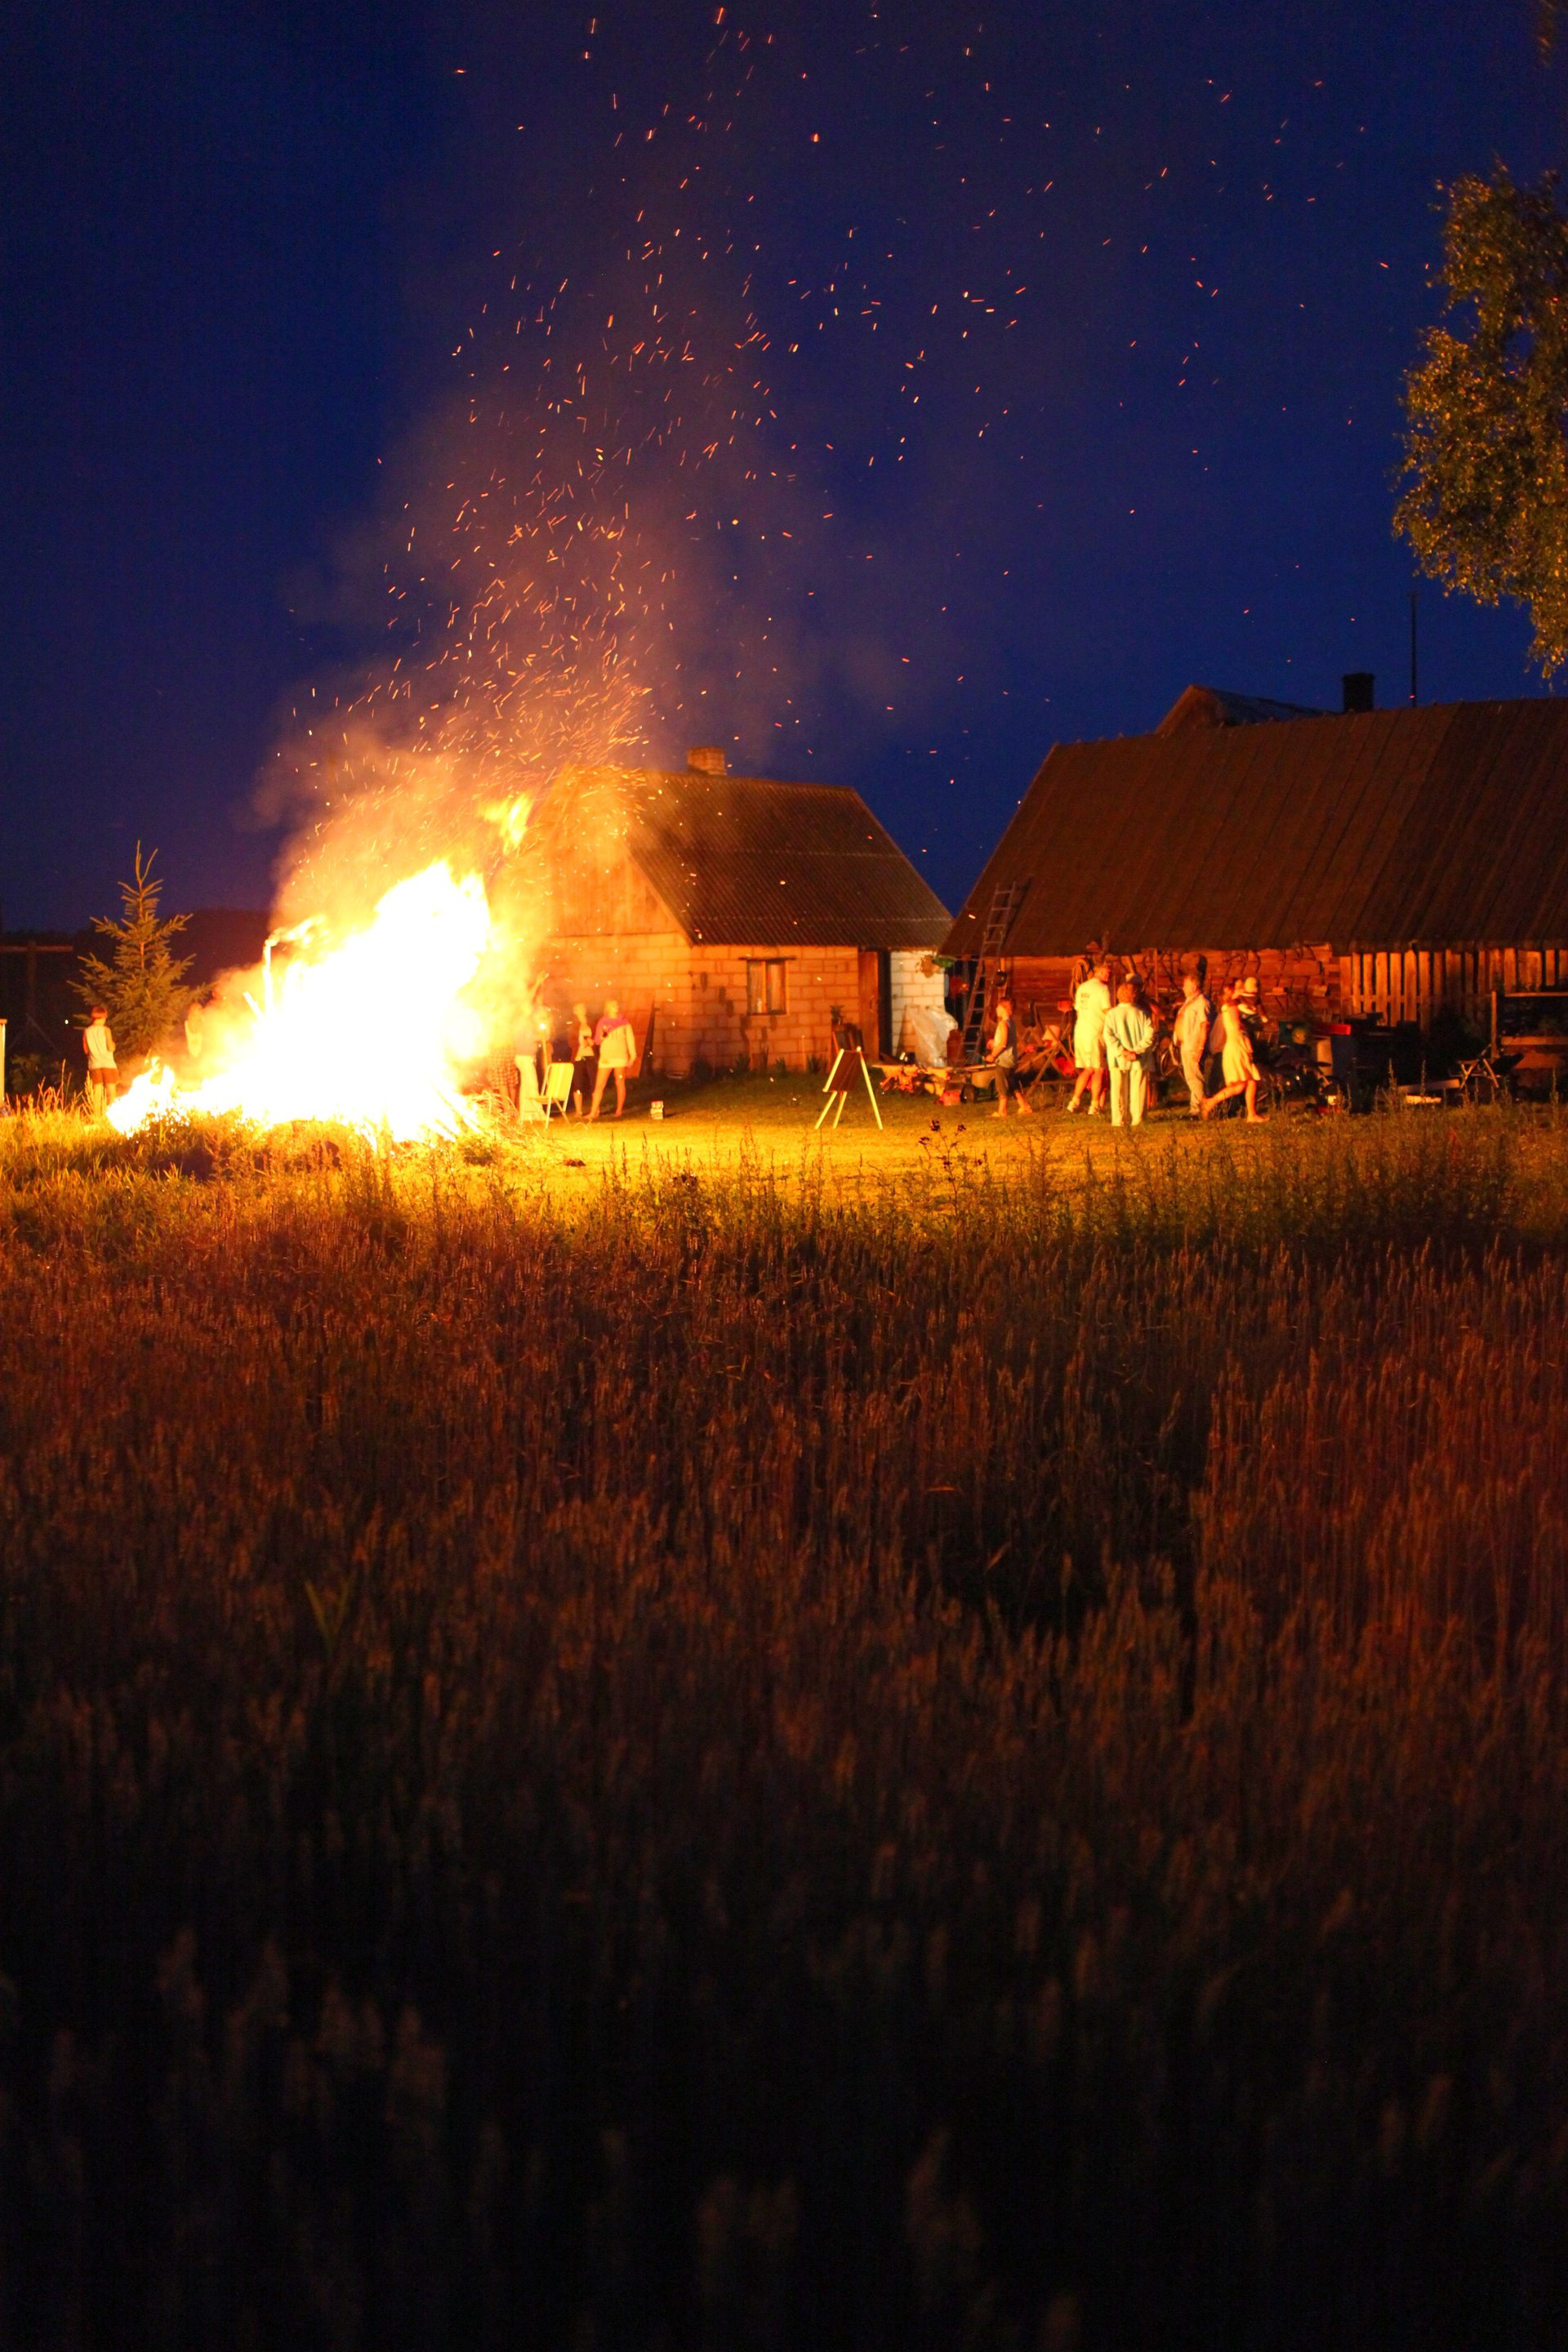 Estonian summer nights, Kurista, Tartumaa, Estonia 2020